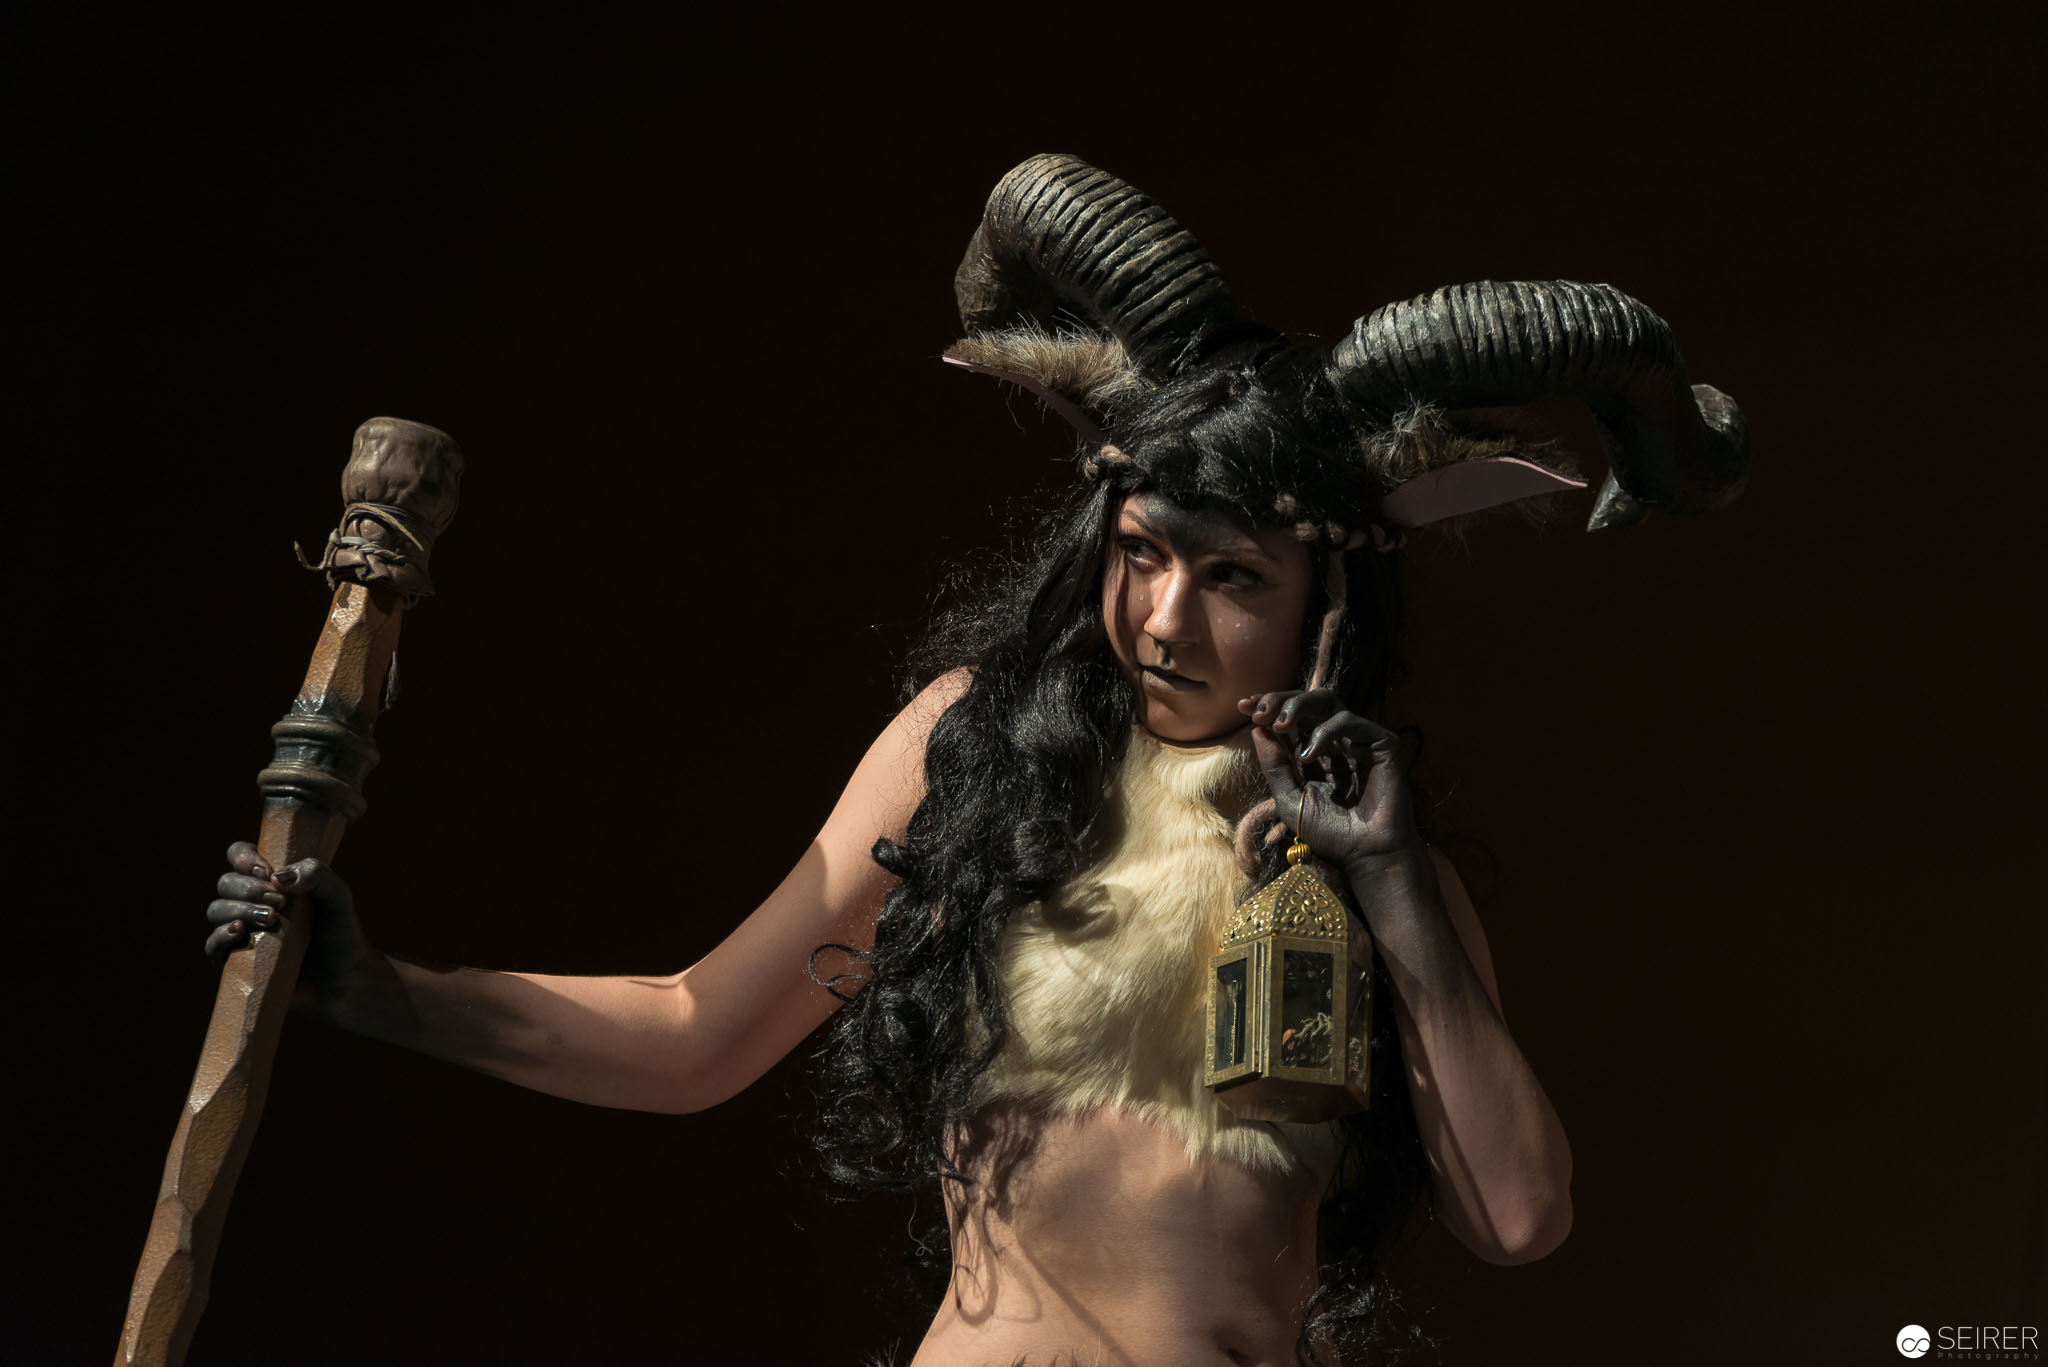 Satyr/ Pan griech. Mythologie / Armor Cosplay: Lee Lee